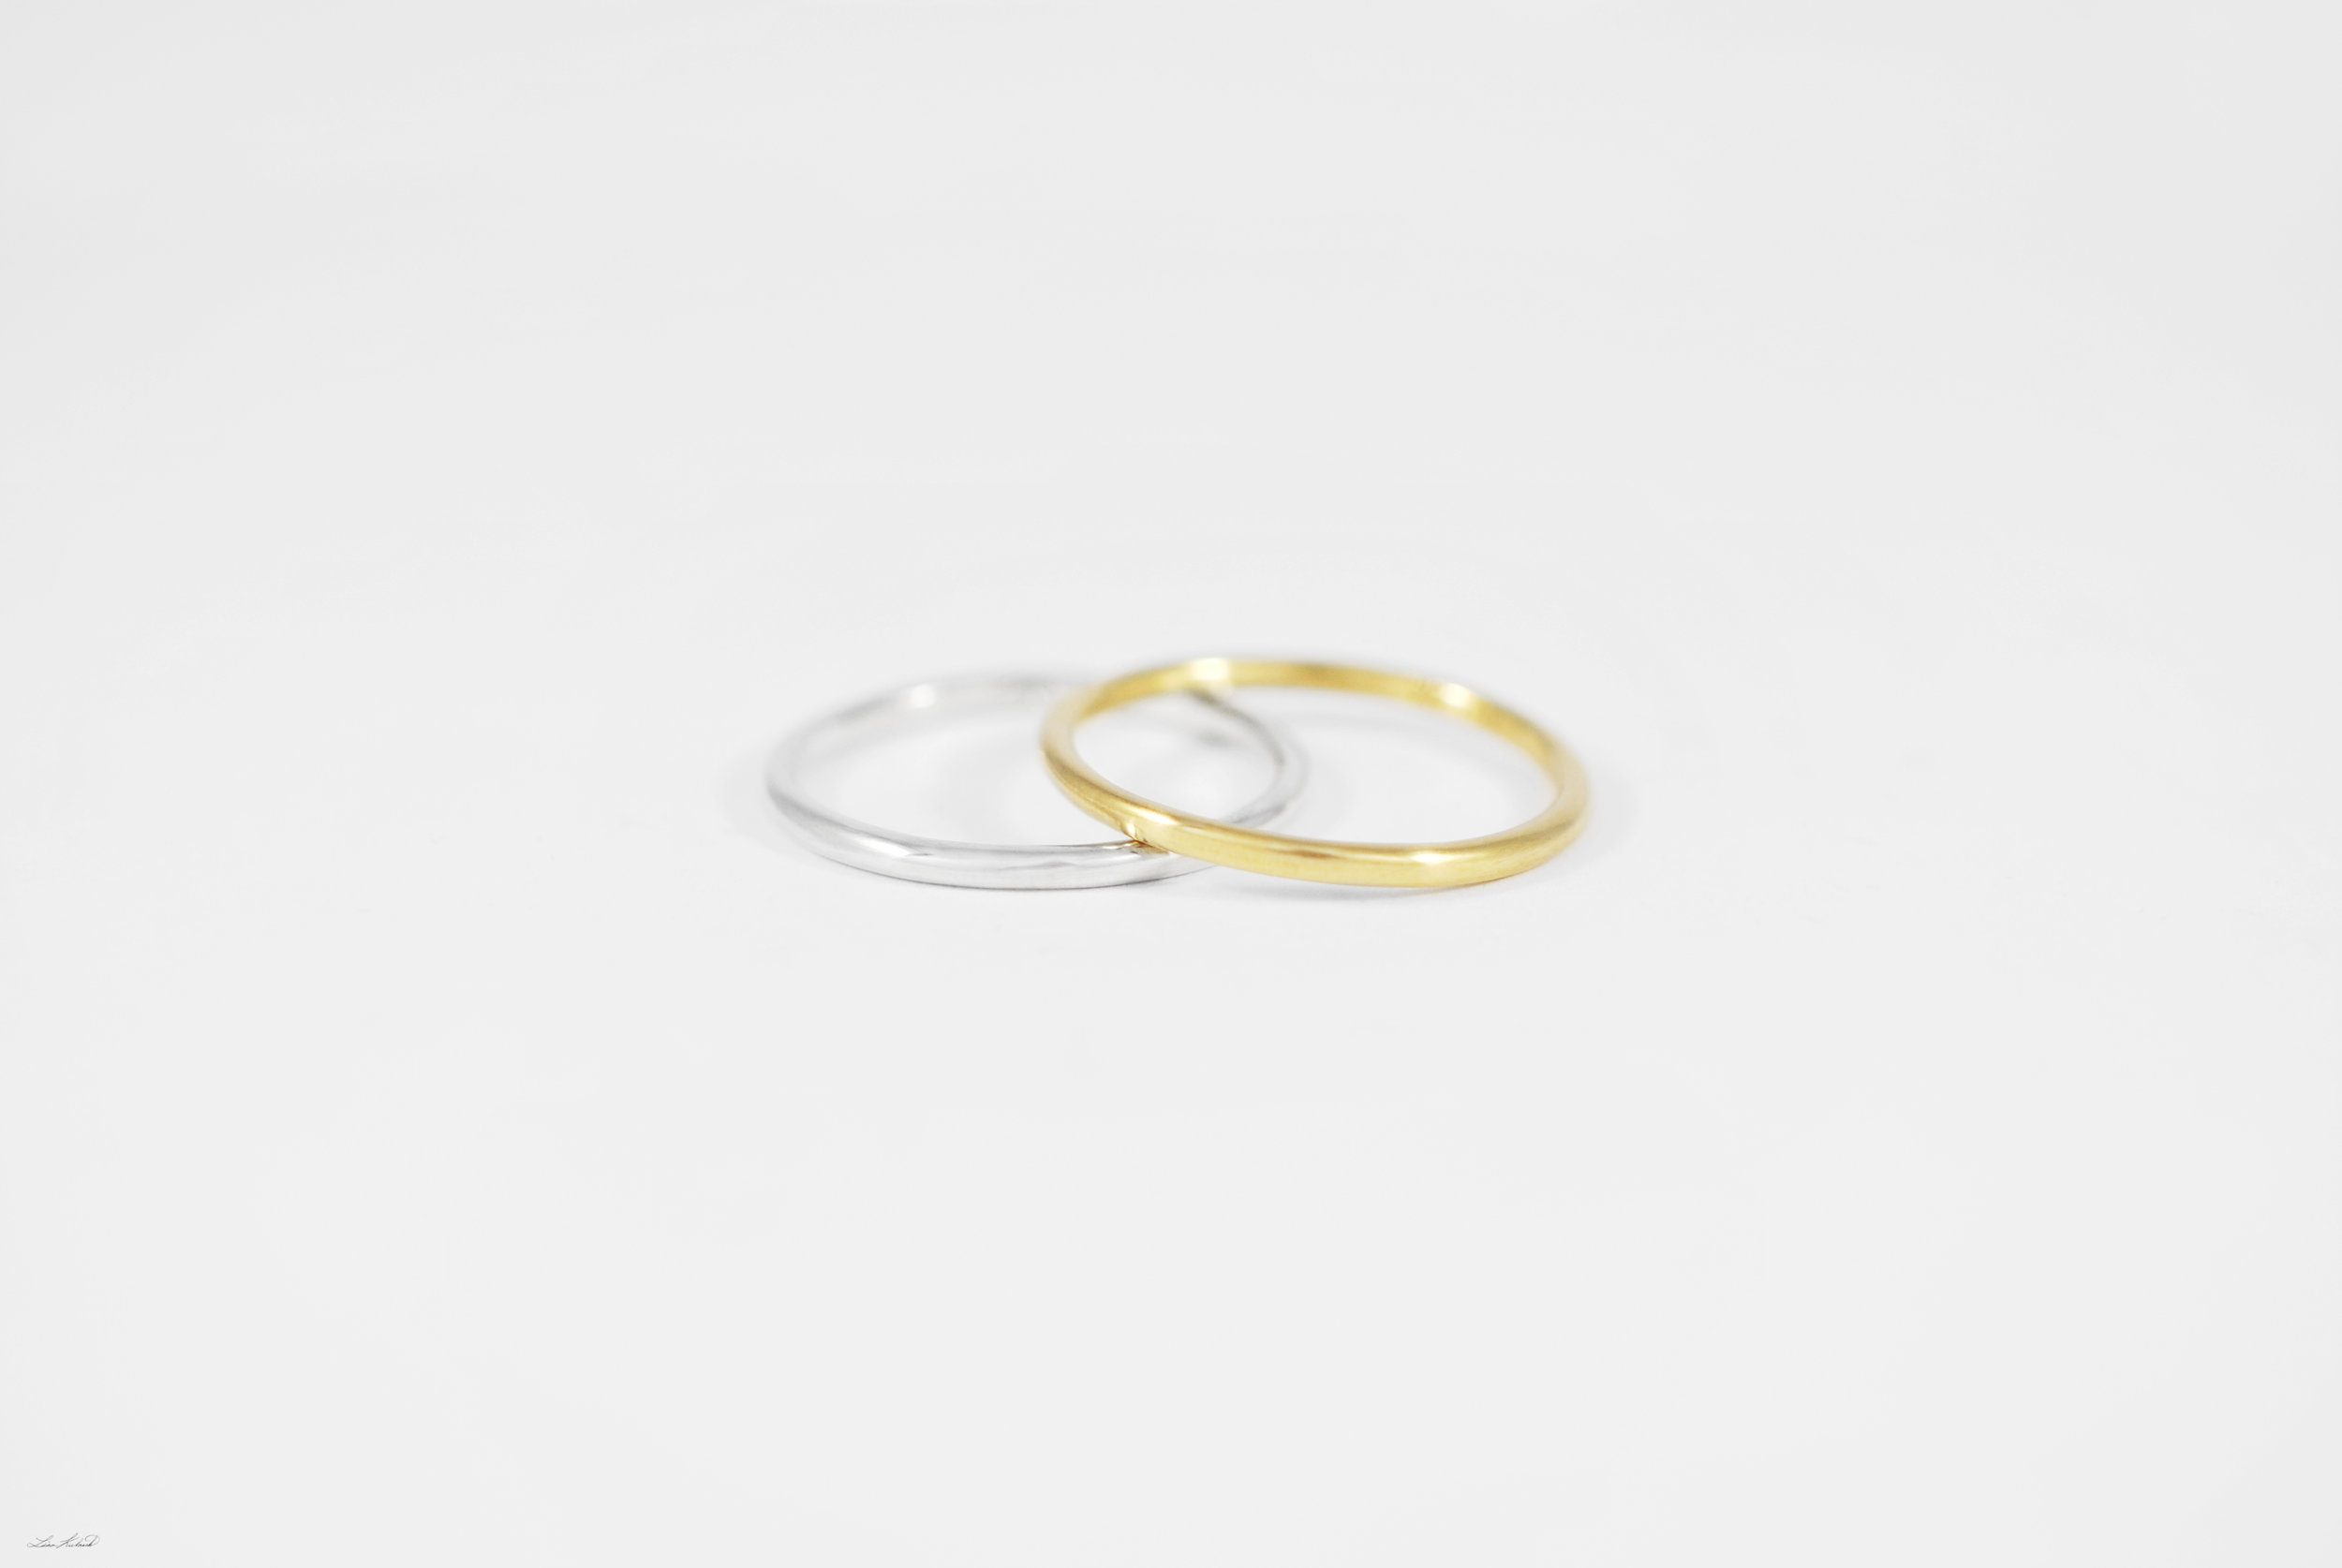 silver & gold round wire rings.jpg